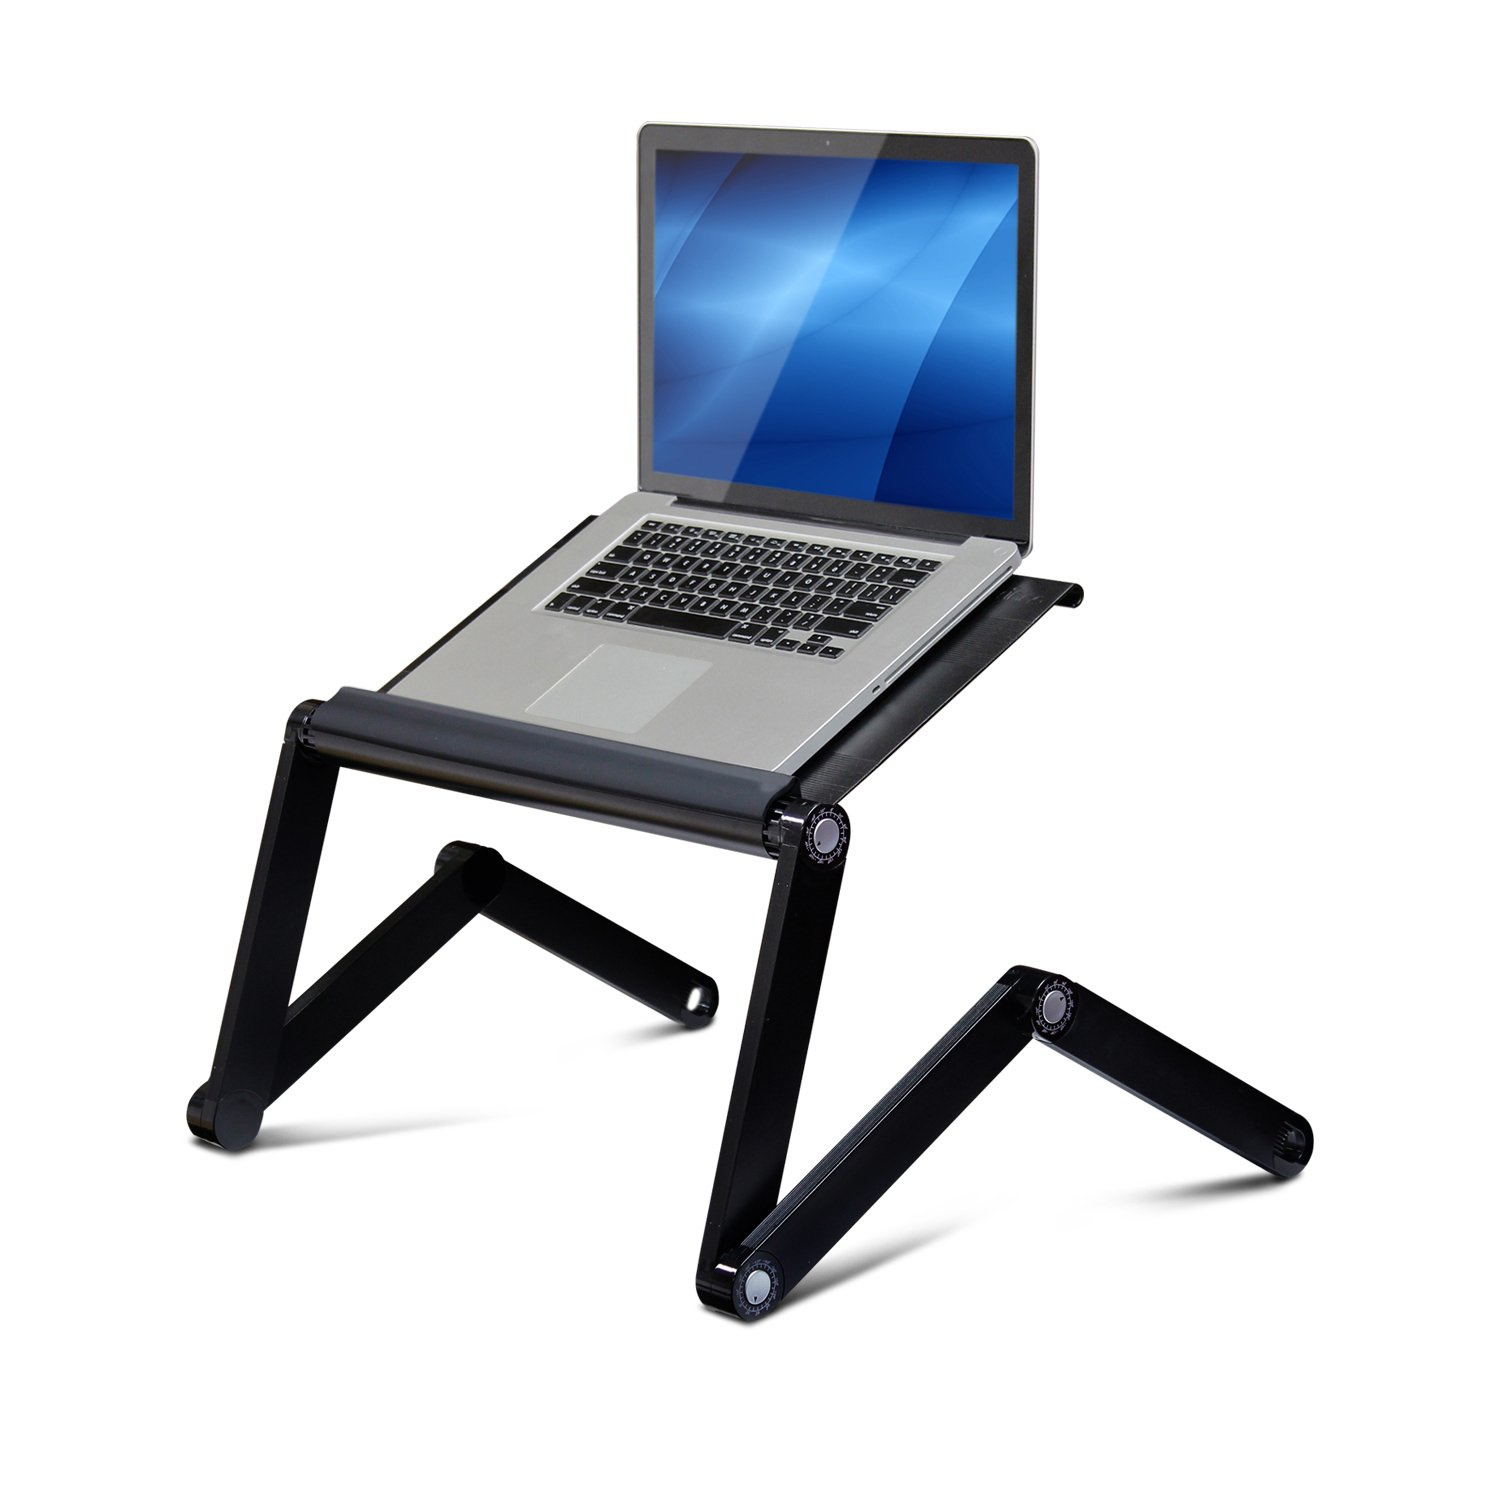 lap tray with holder adjustable light desk laptop foam cushion portable index led and cup just